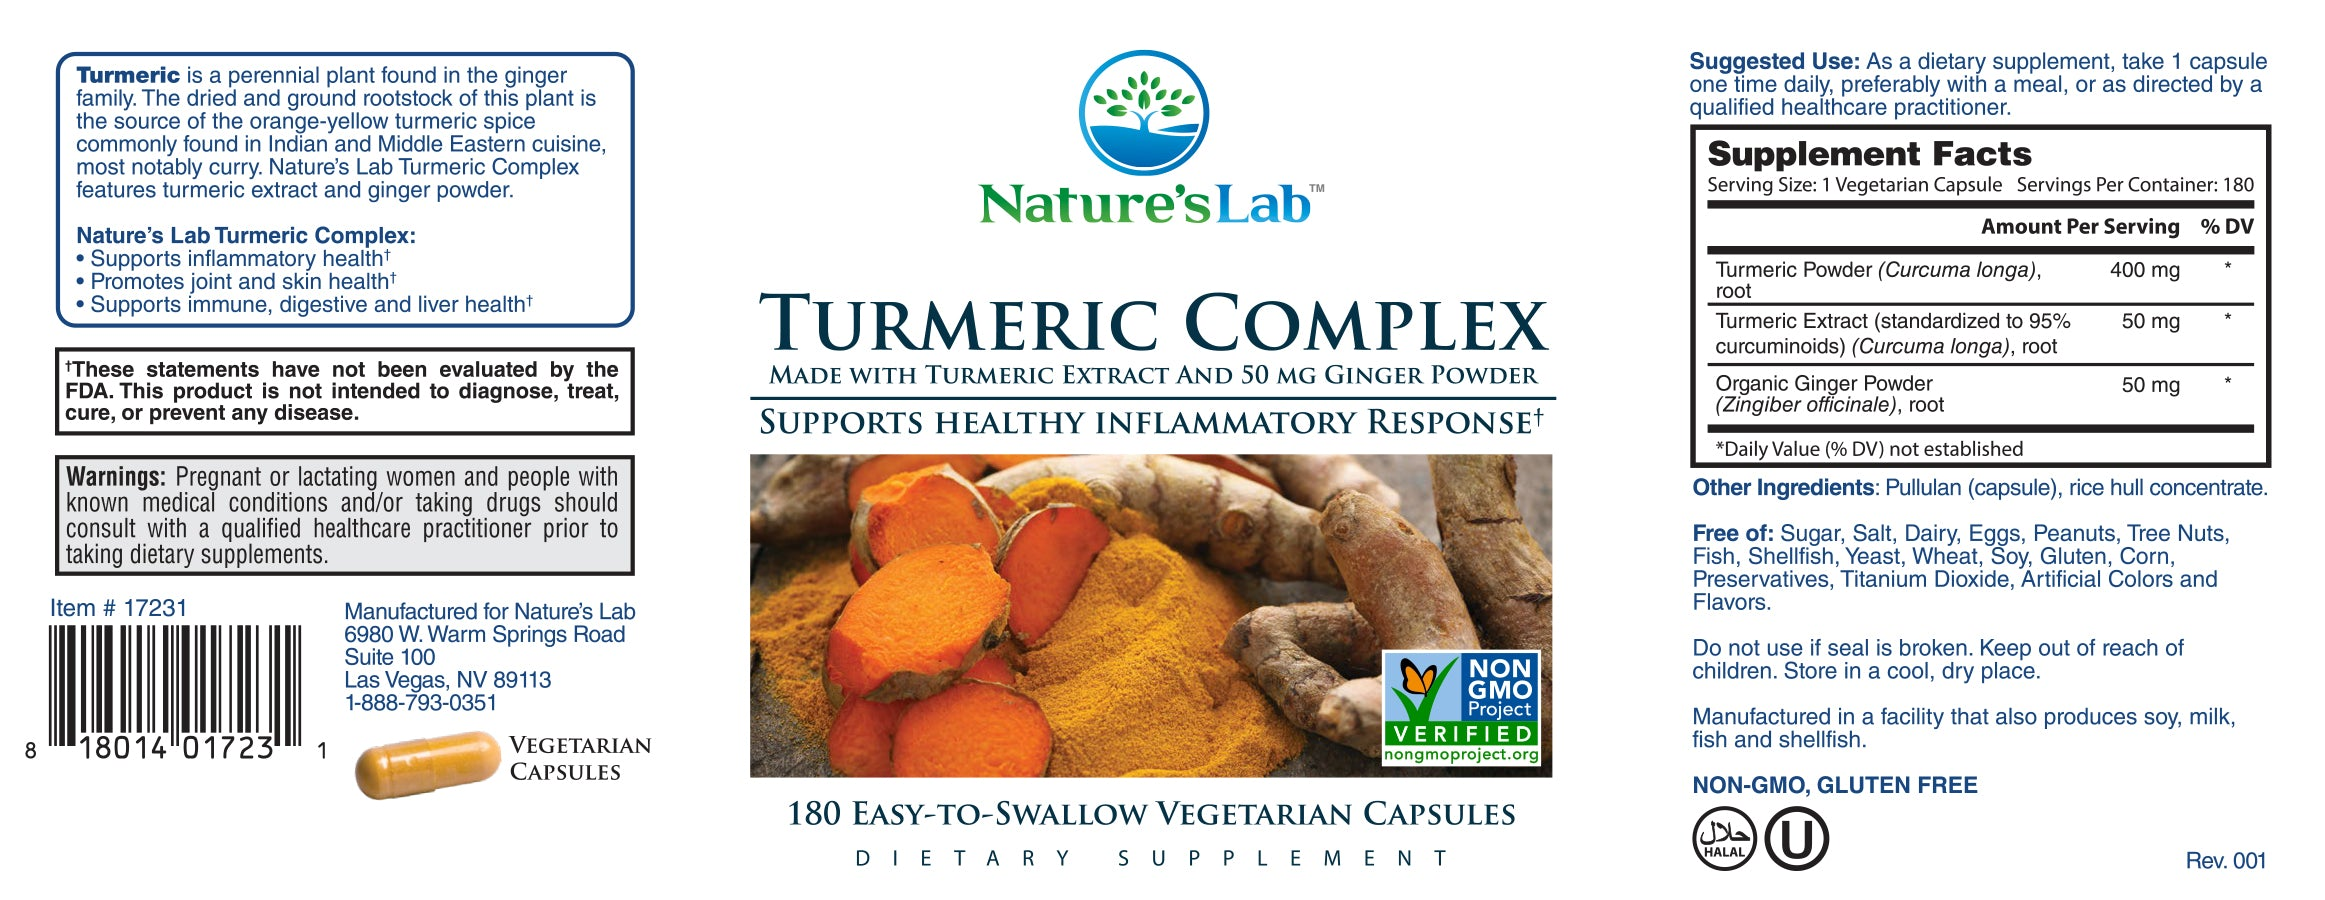 Nature's Lab Turmeric Complex Supplement Facts